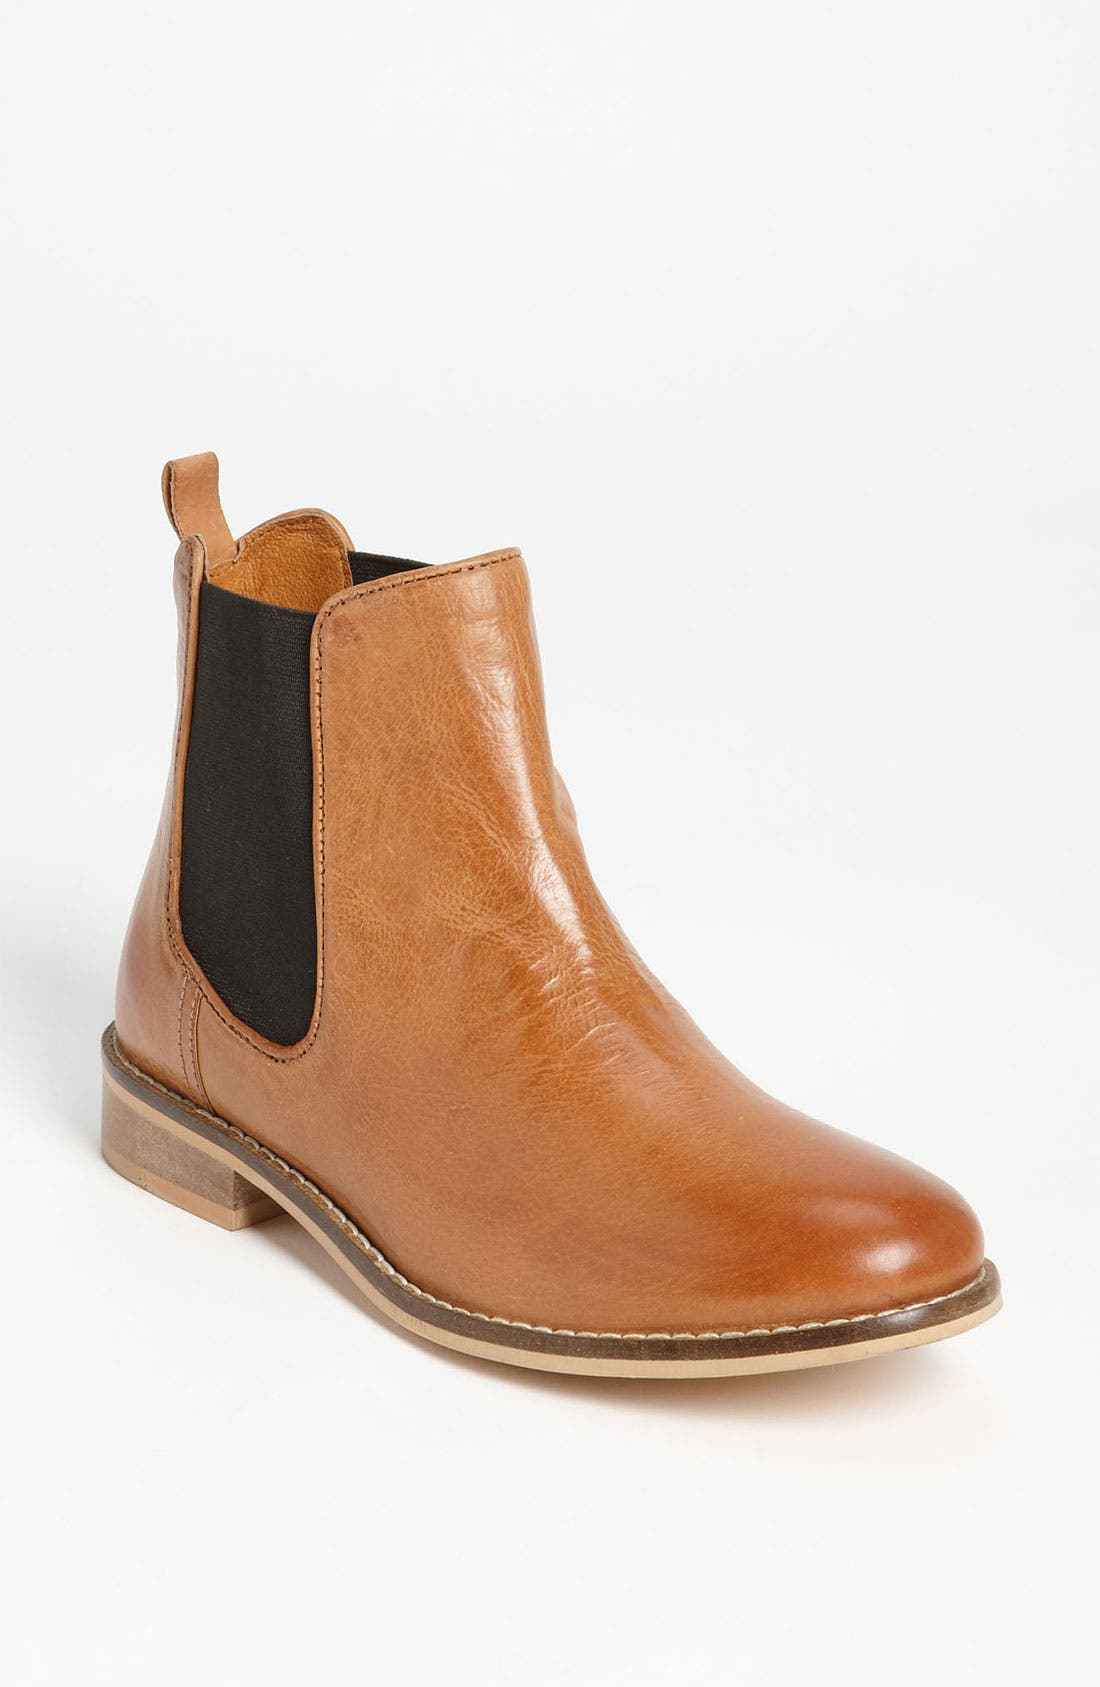 Alternate Image 1 Selected - Topshop 'April' Chelsea Boot